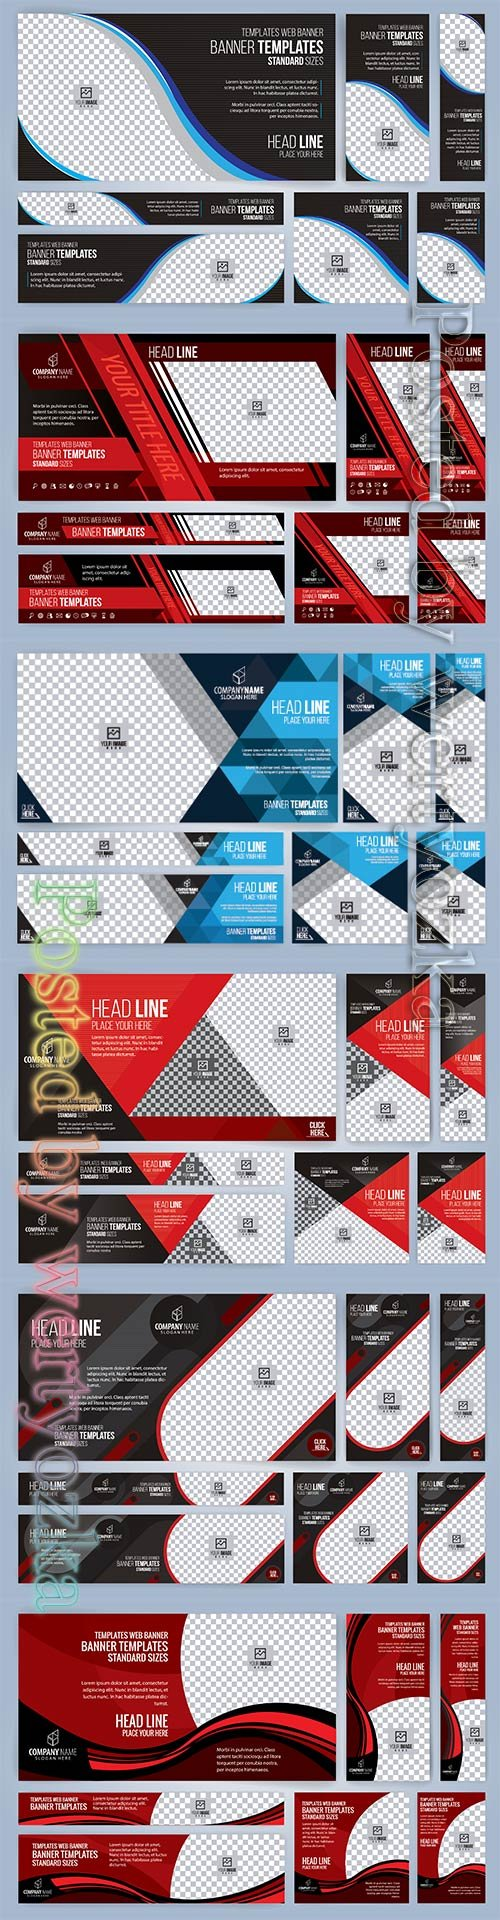 Web banners templates, standard sizes with space for photo